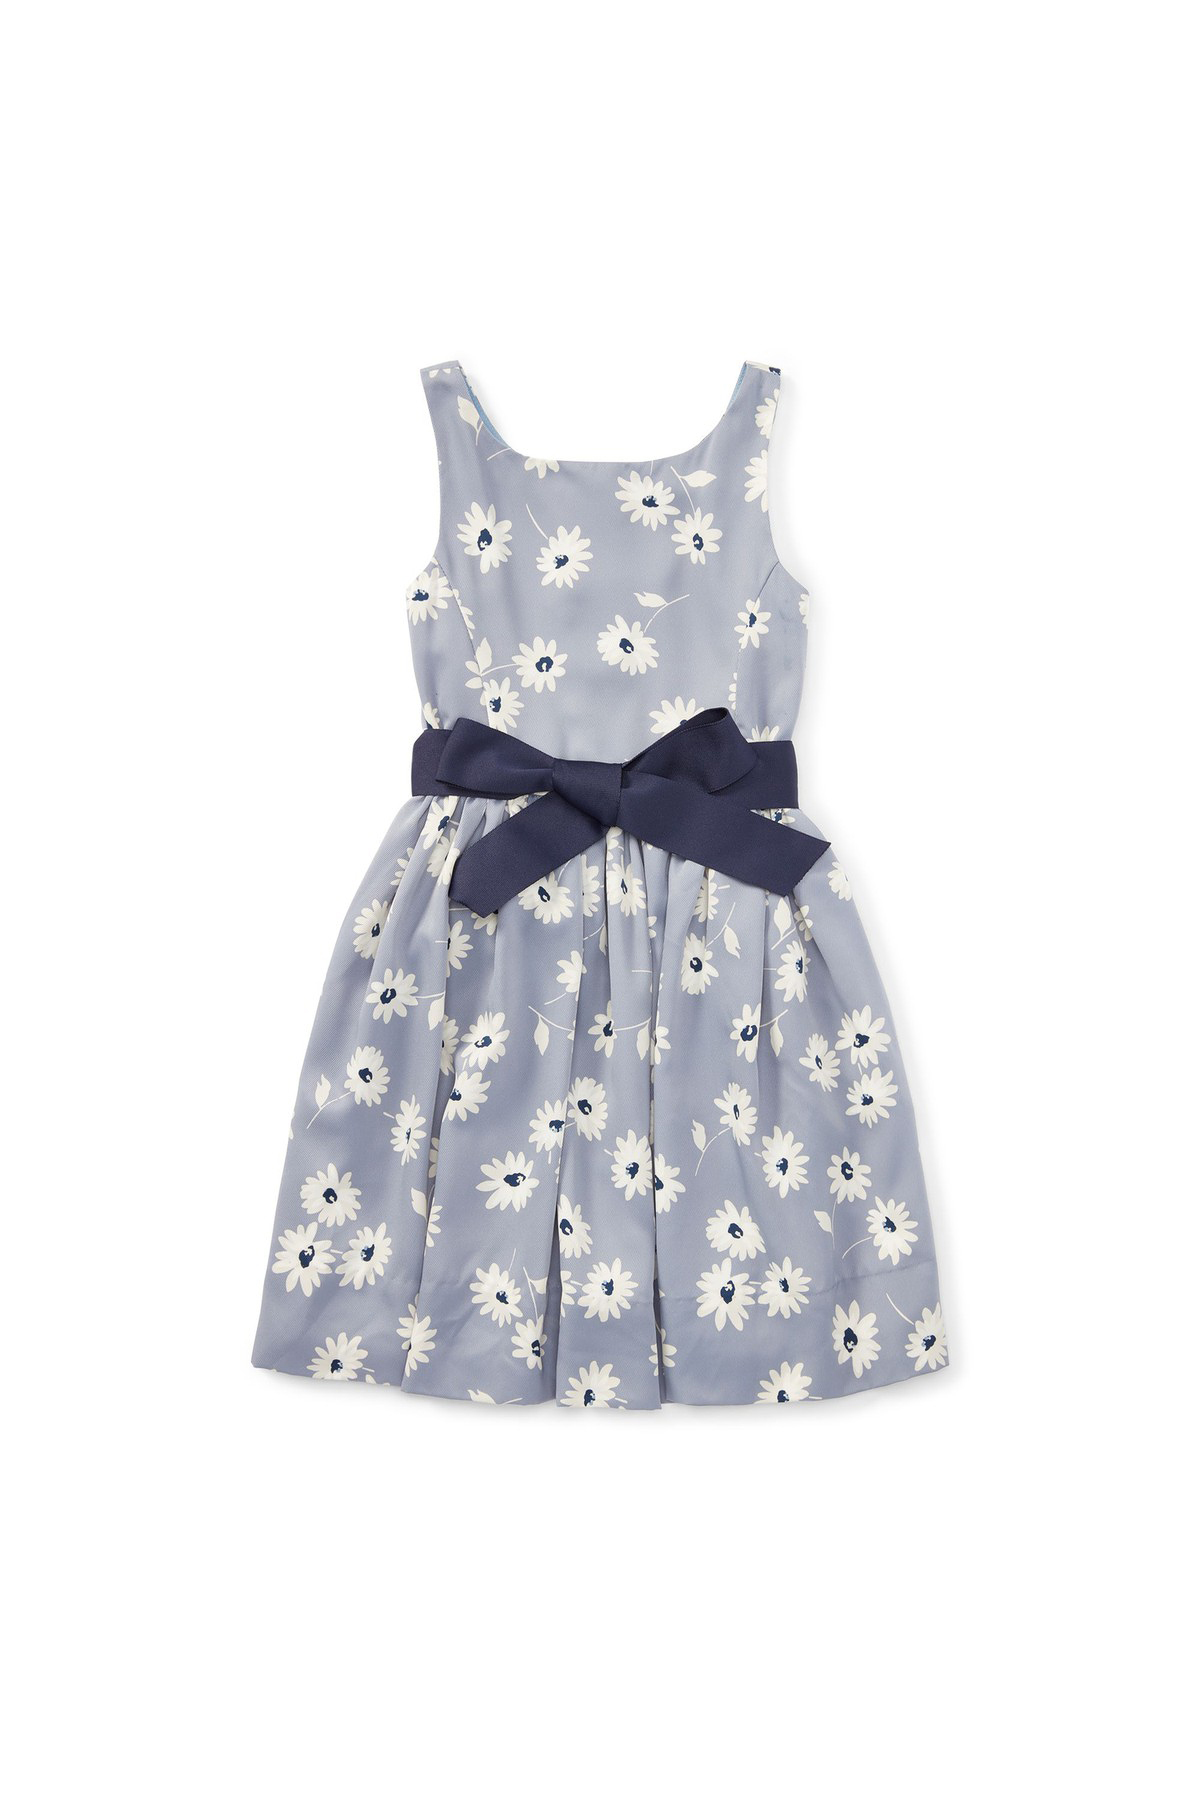 blue floral flower girl dress